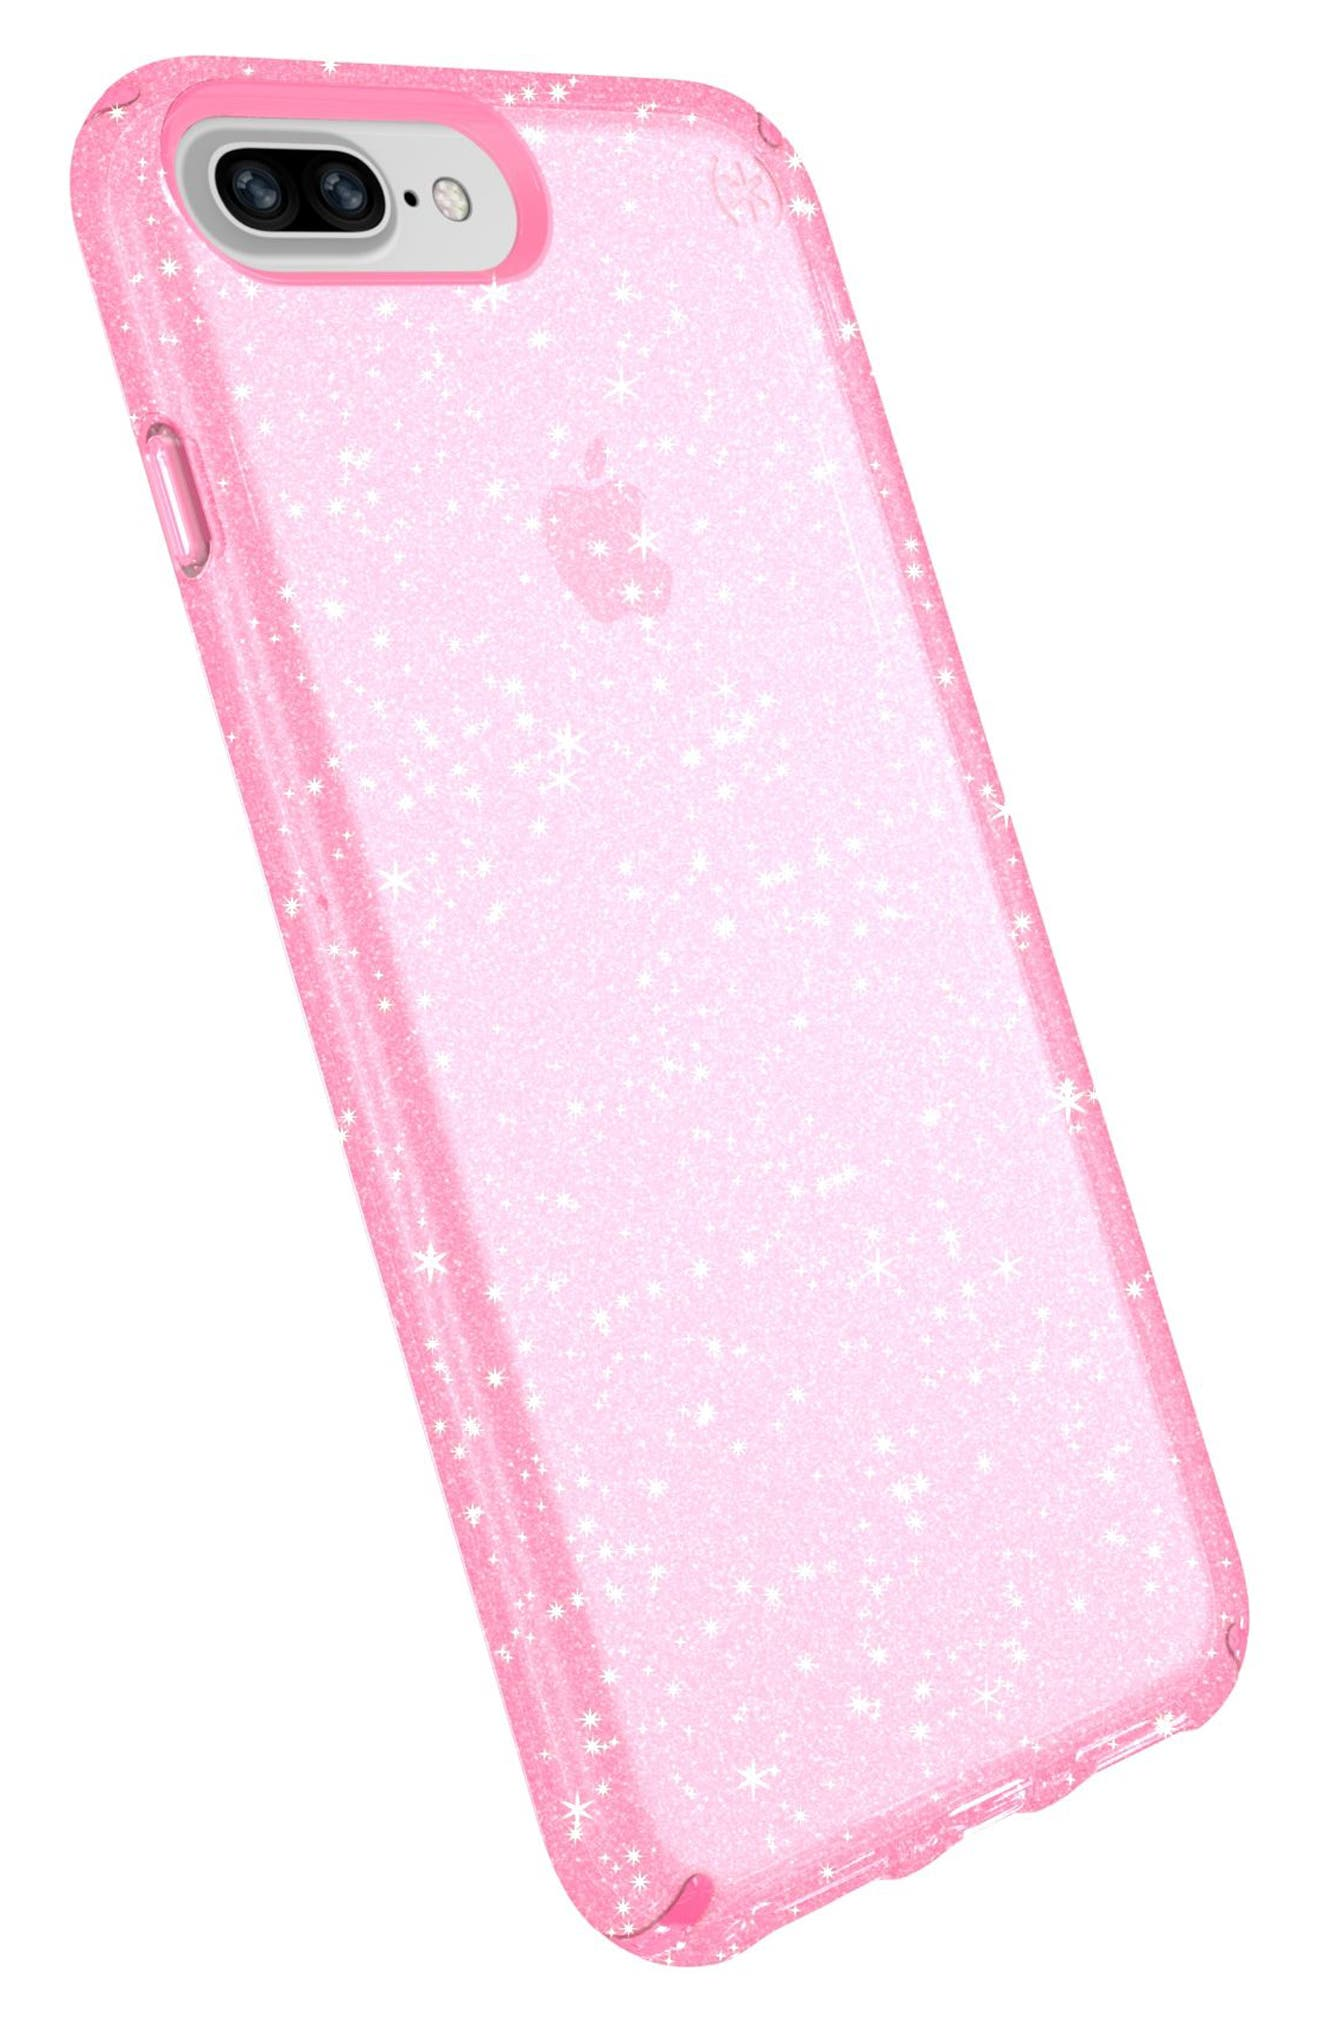 iPhone 6/6s/7/8 Plus Case,                             Alternate thumbnail 4, color,                             Bella Pink Gold Glitter/ Pink